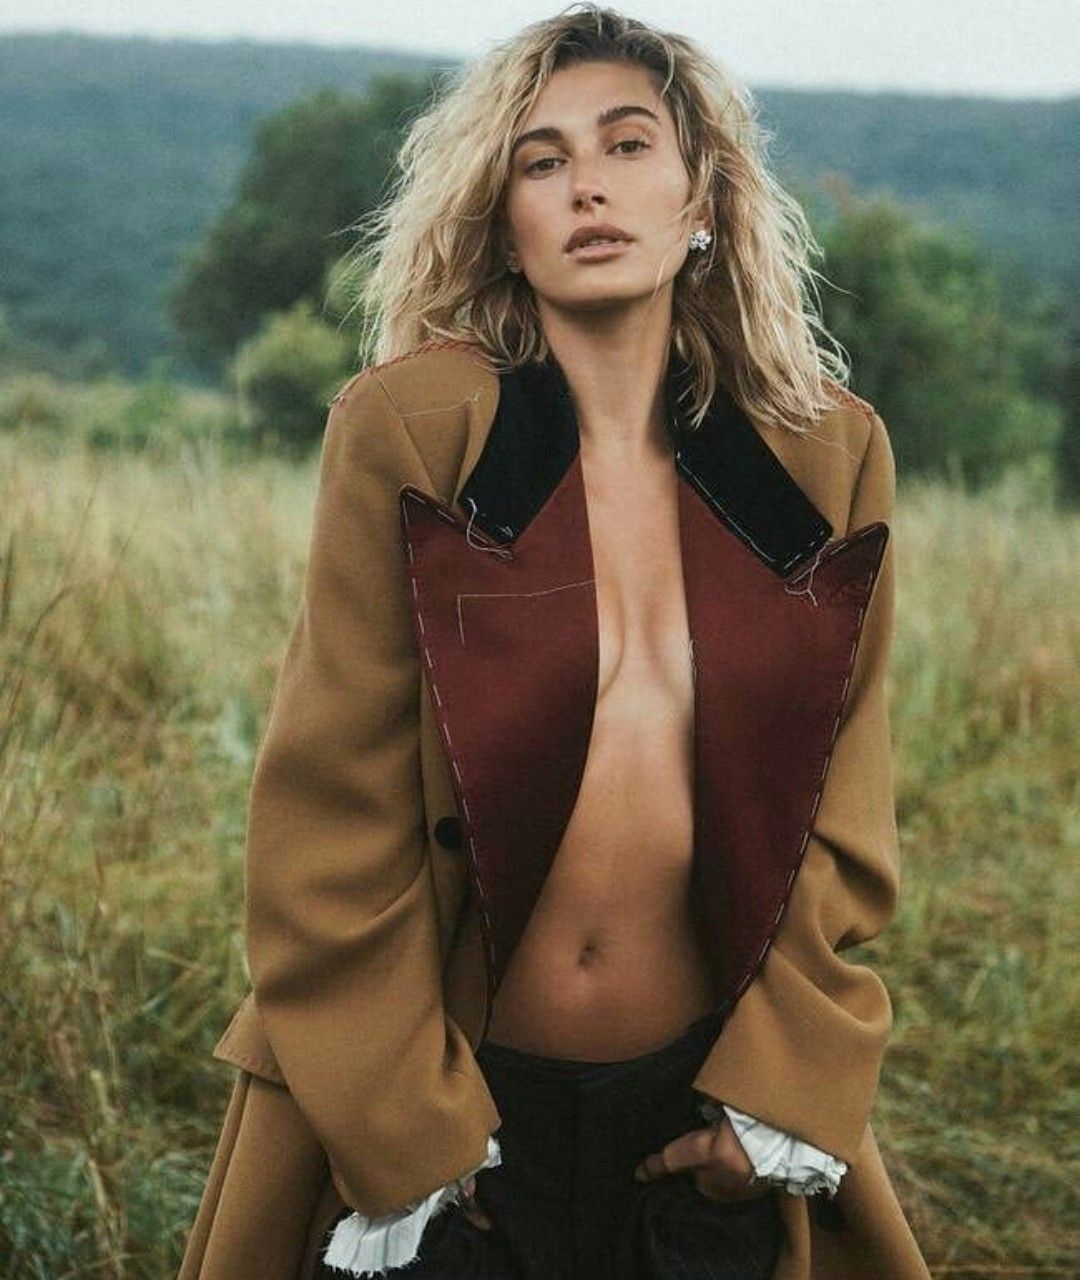 Pin By Michelle Panek On Outfits I Love Vogue Australia Hailey